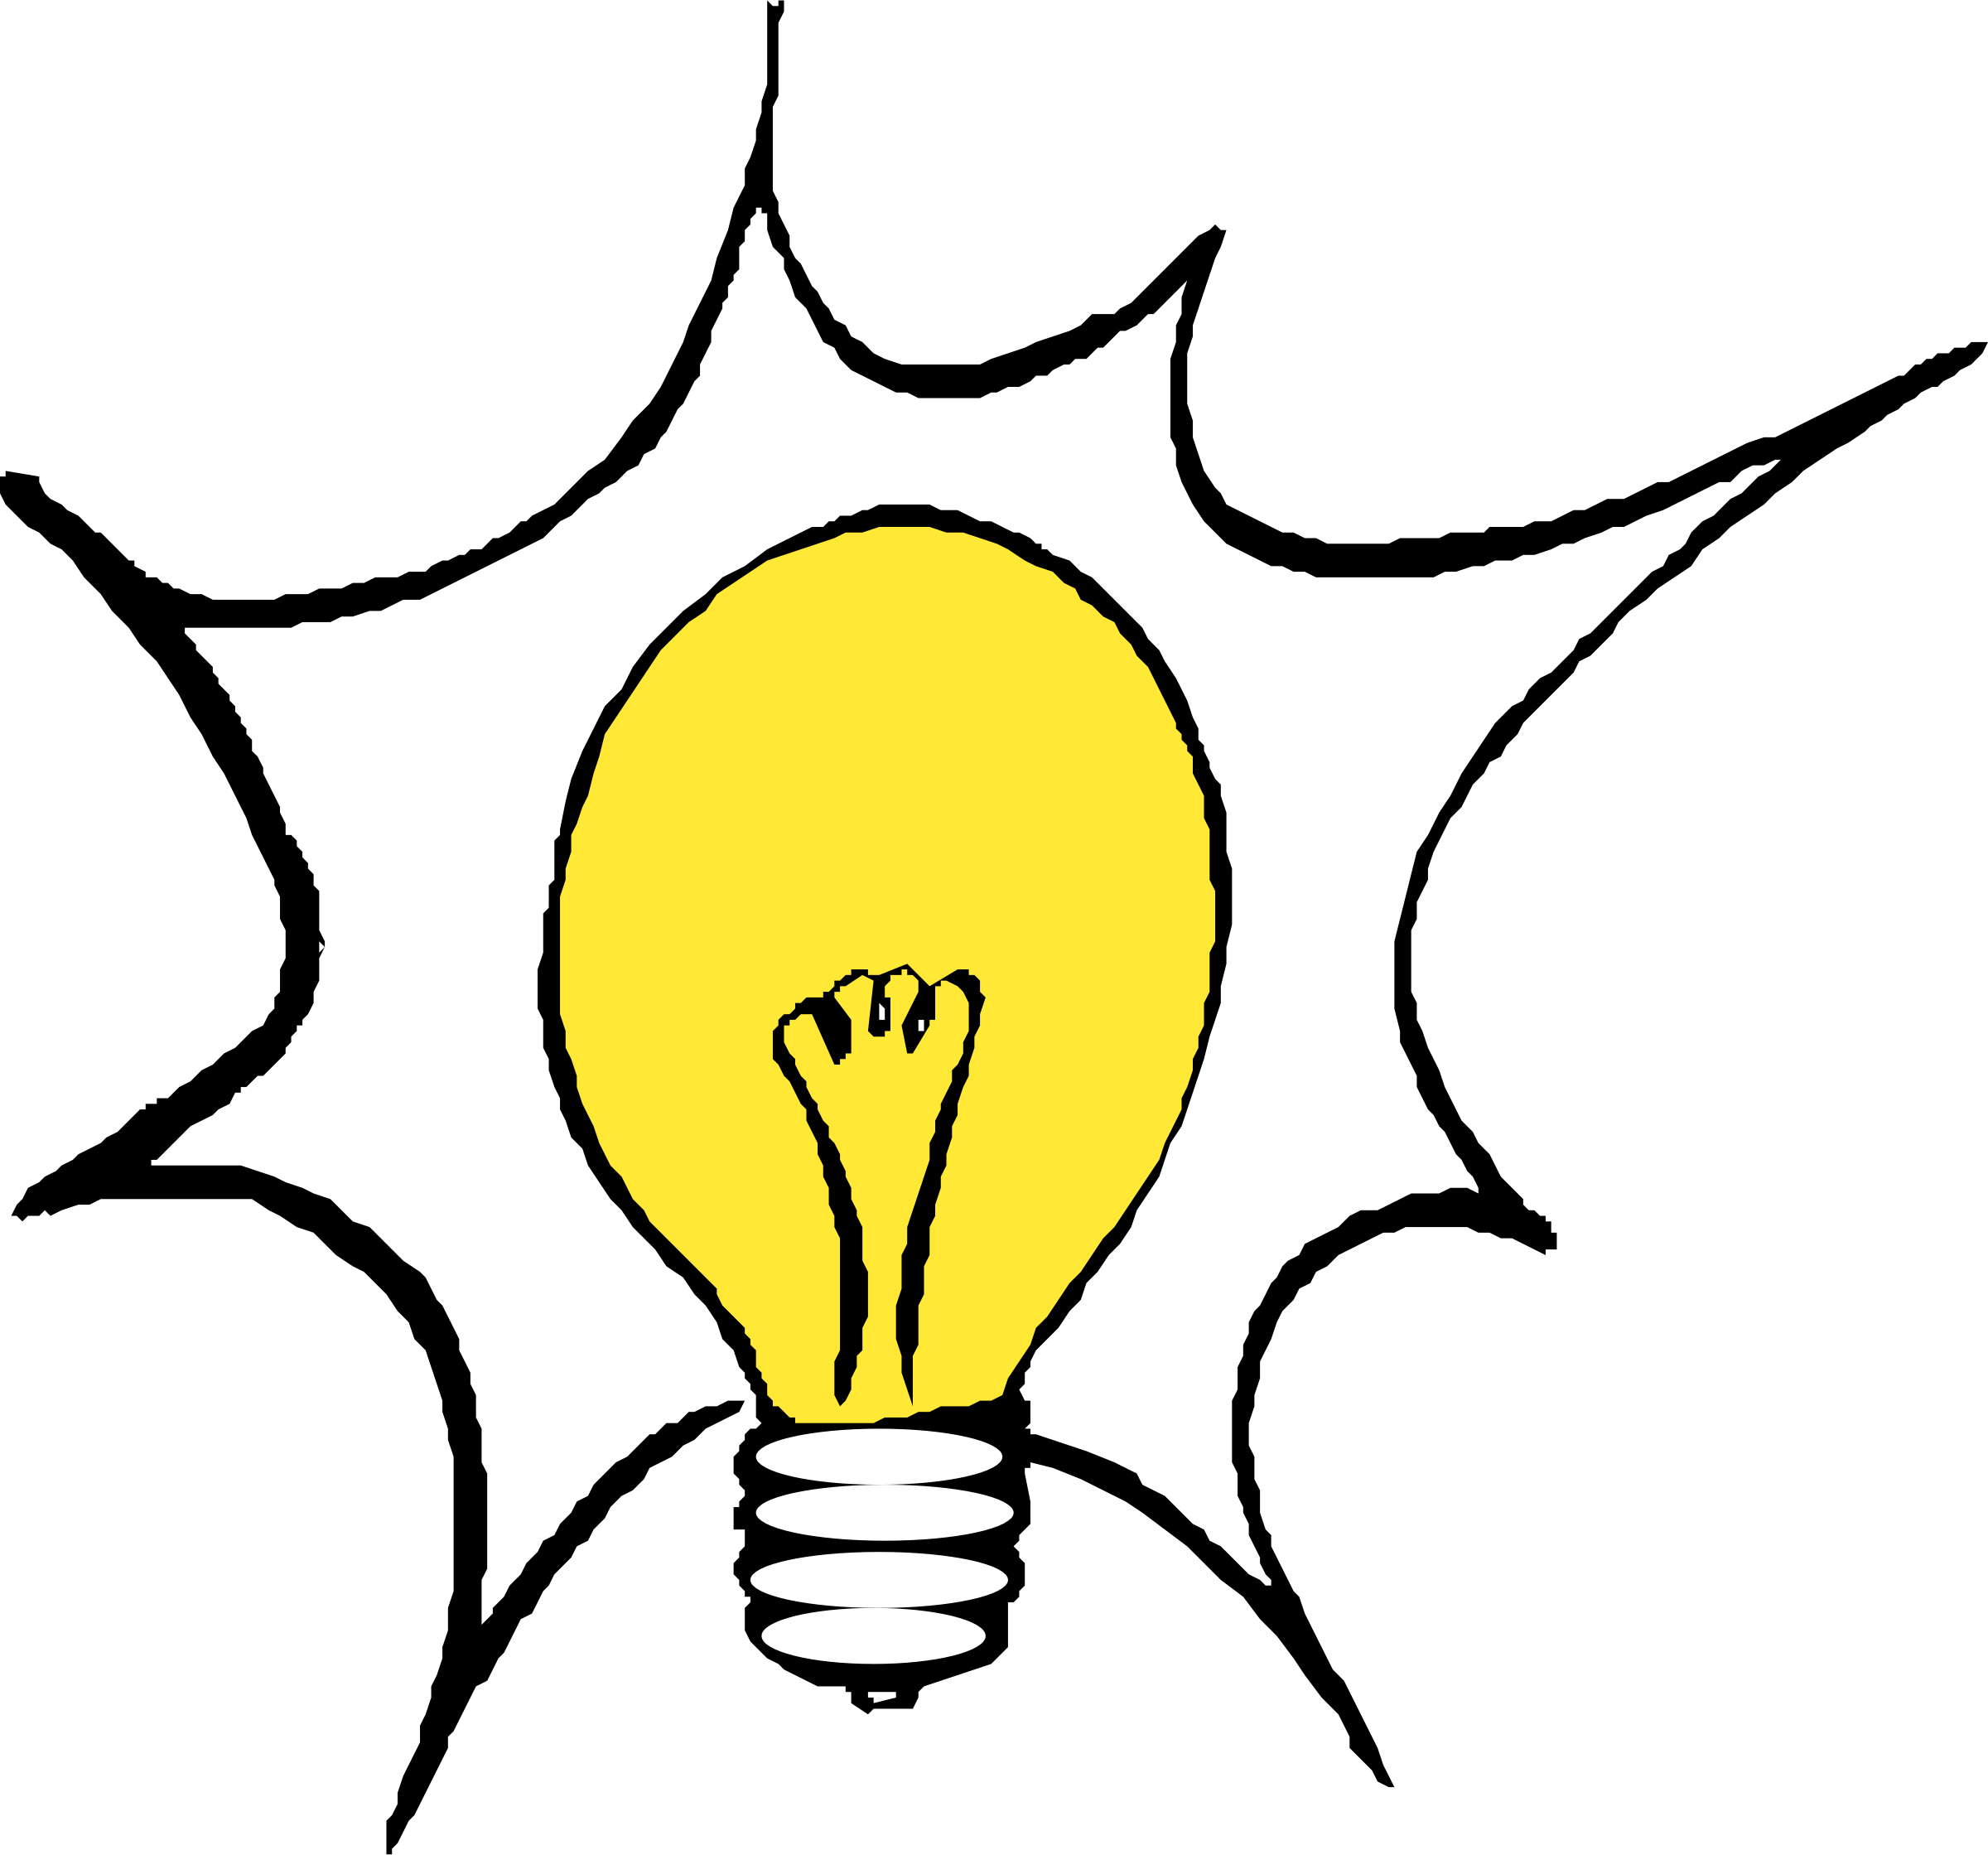 Lightbulb light bulb clip art at vector 2 image.